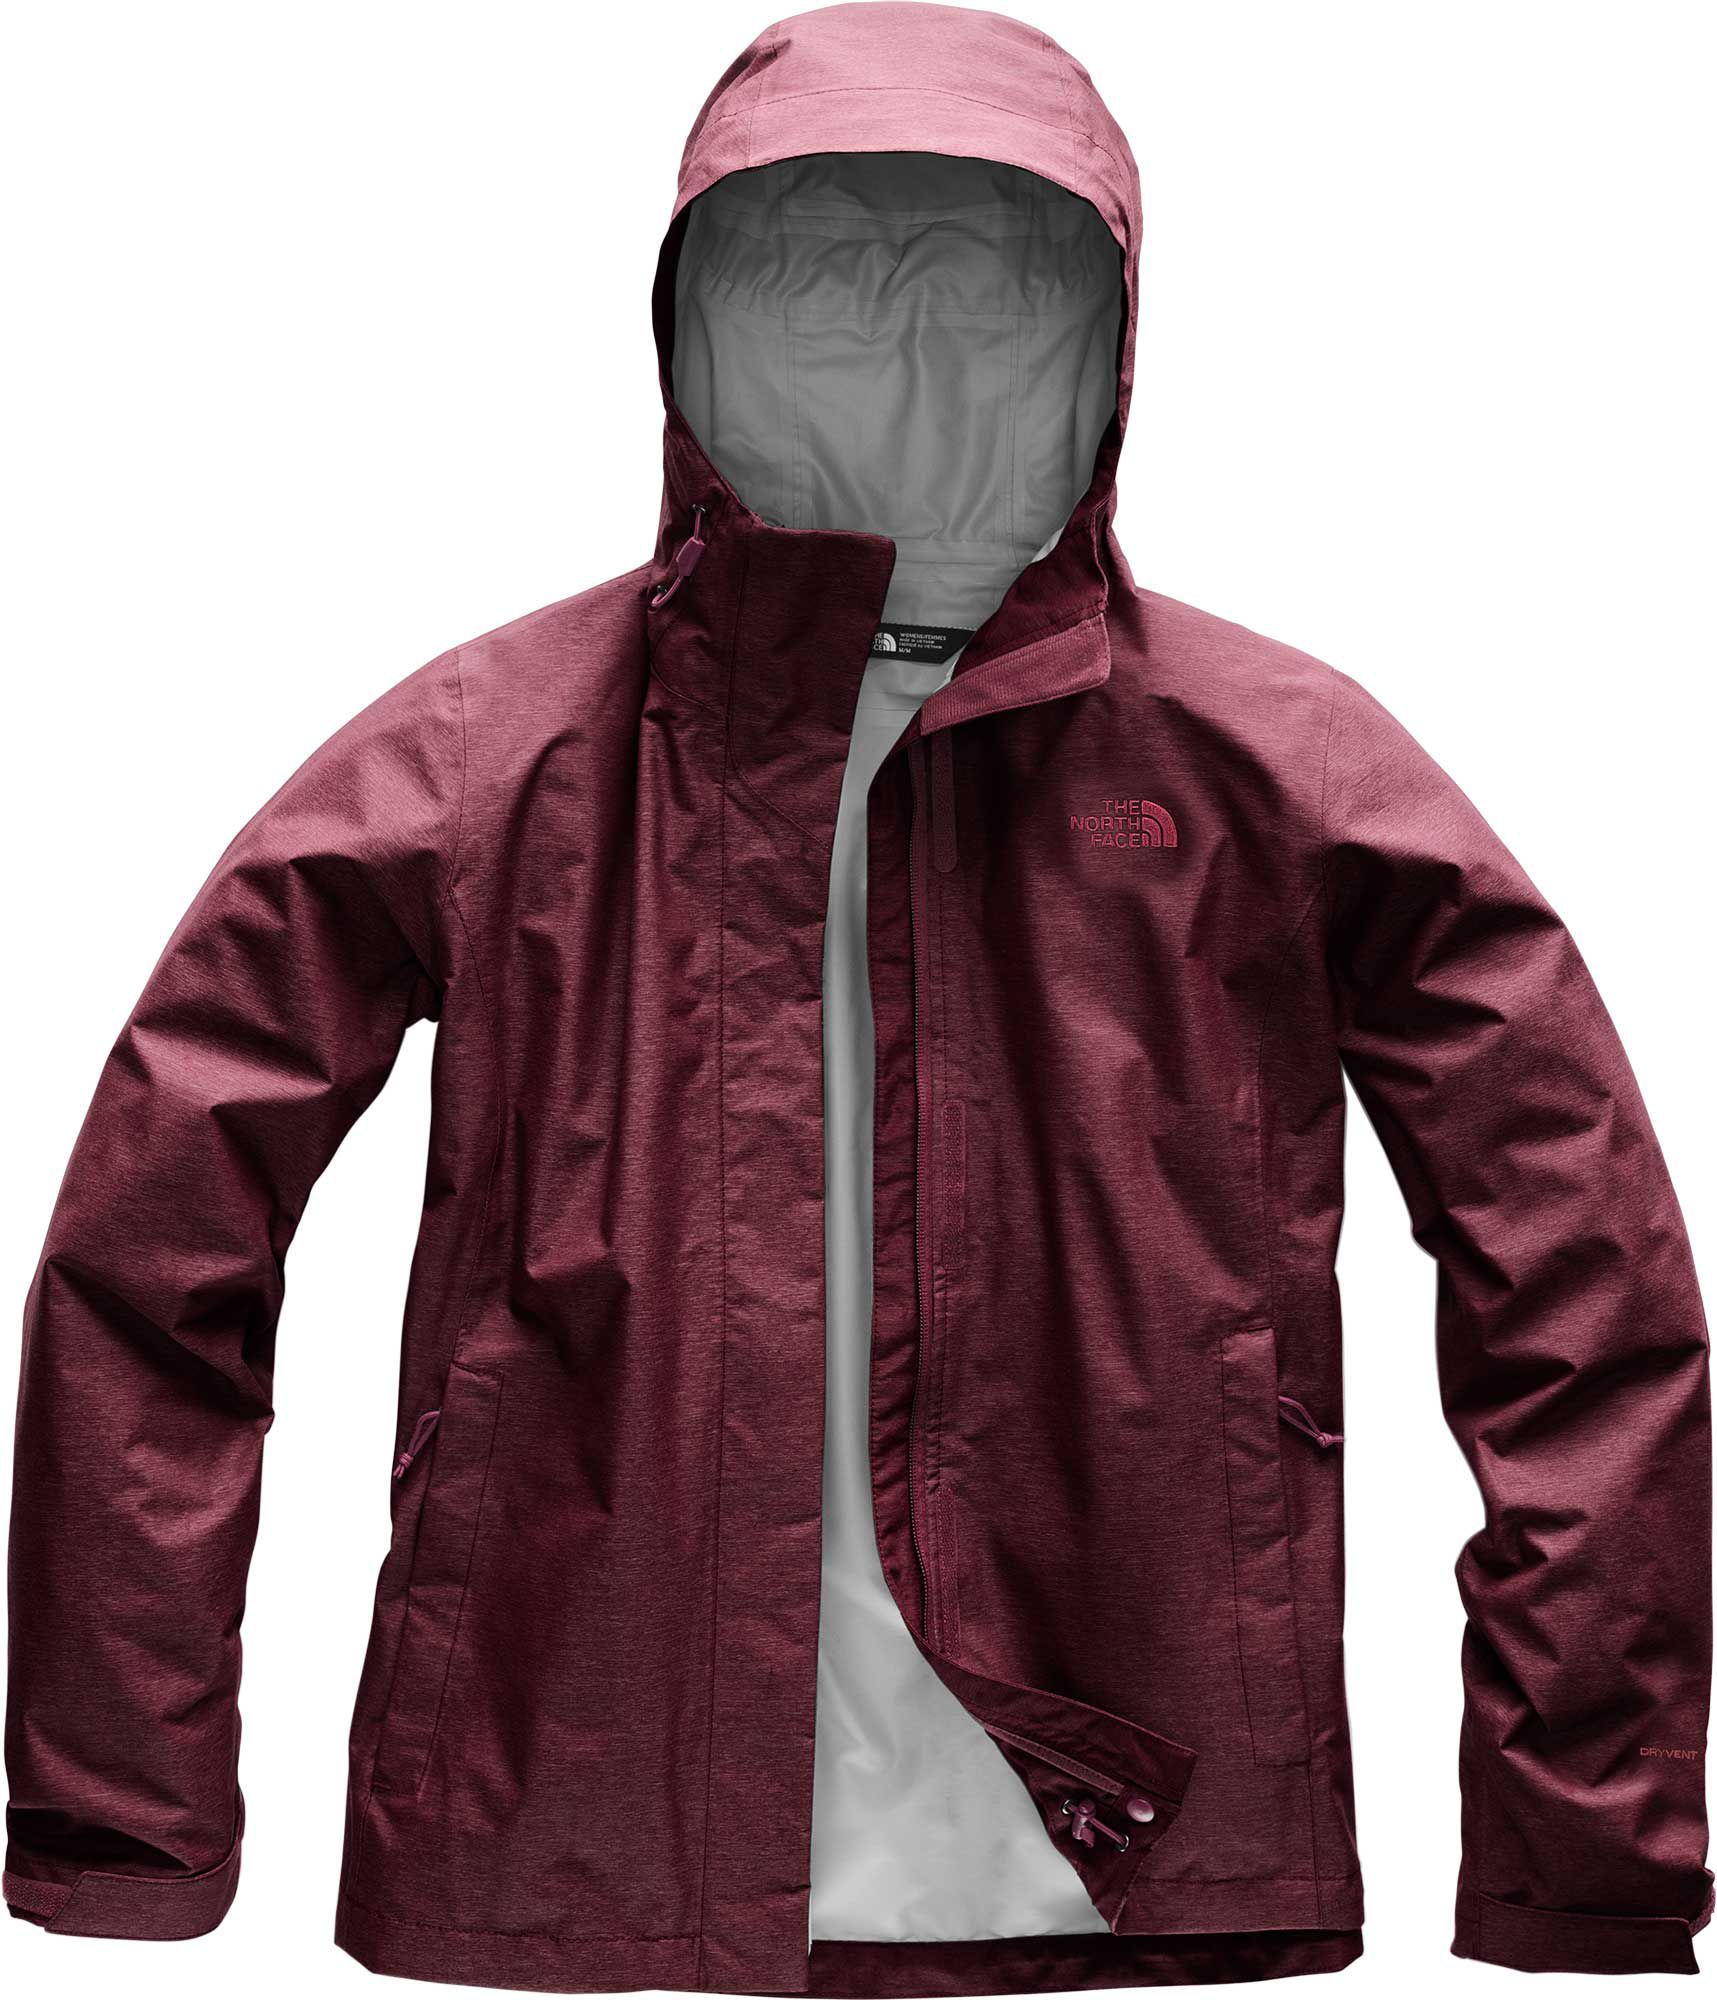 b4d8211fb The North Face Women's Venture 2 Jacket in 2019   Clothes   Jackets ...